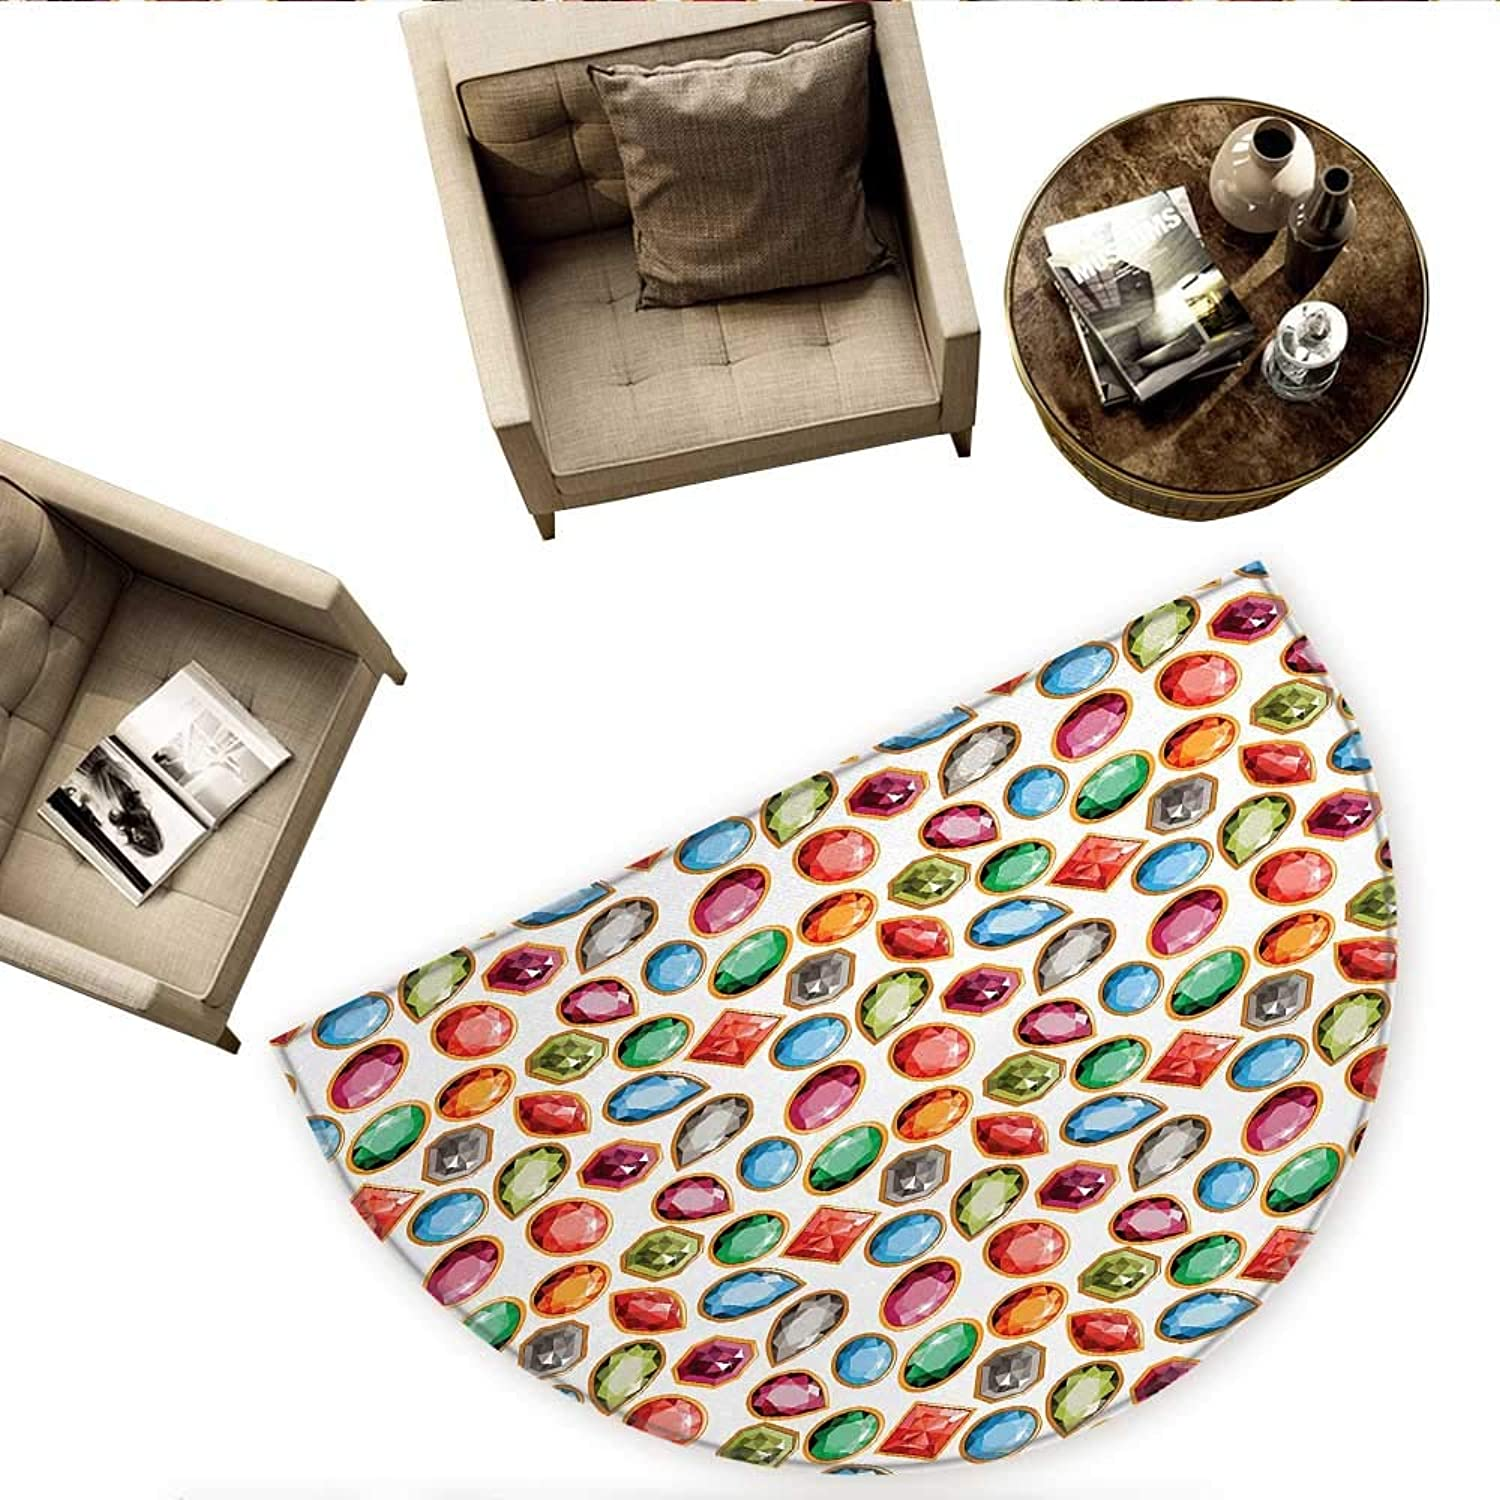 Diamond Semicircle Doormat Diamond Patterns Different Type of Forms Facets Square Oval Triangle Topaz Illustration Halfmoon doormats H 74.8  xD 112.2  Multi